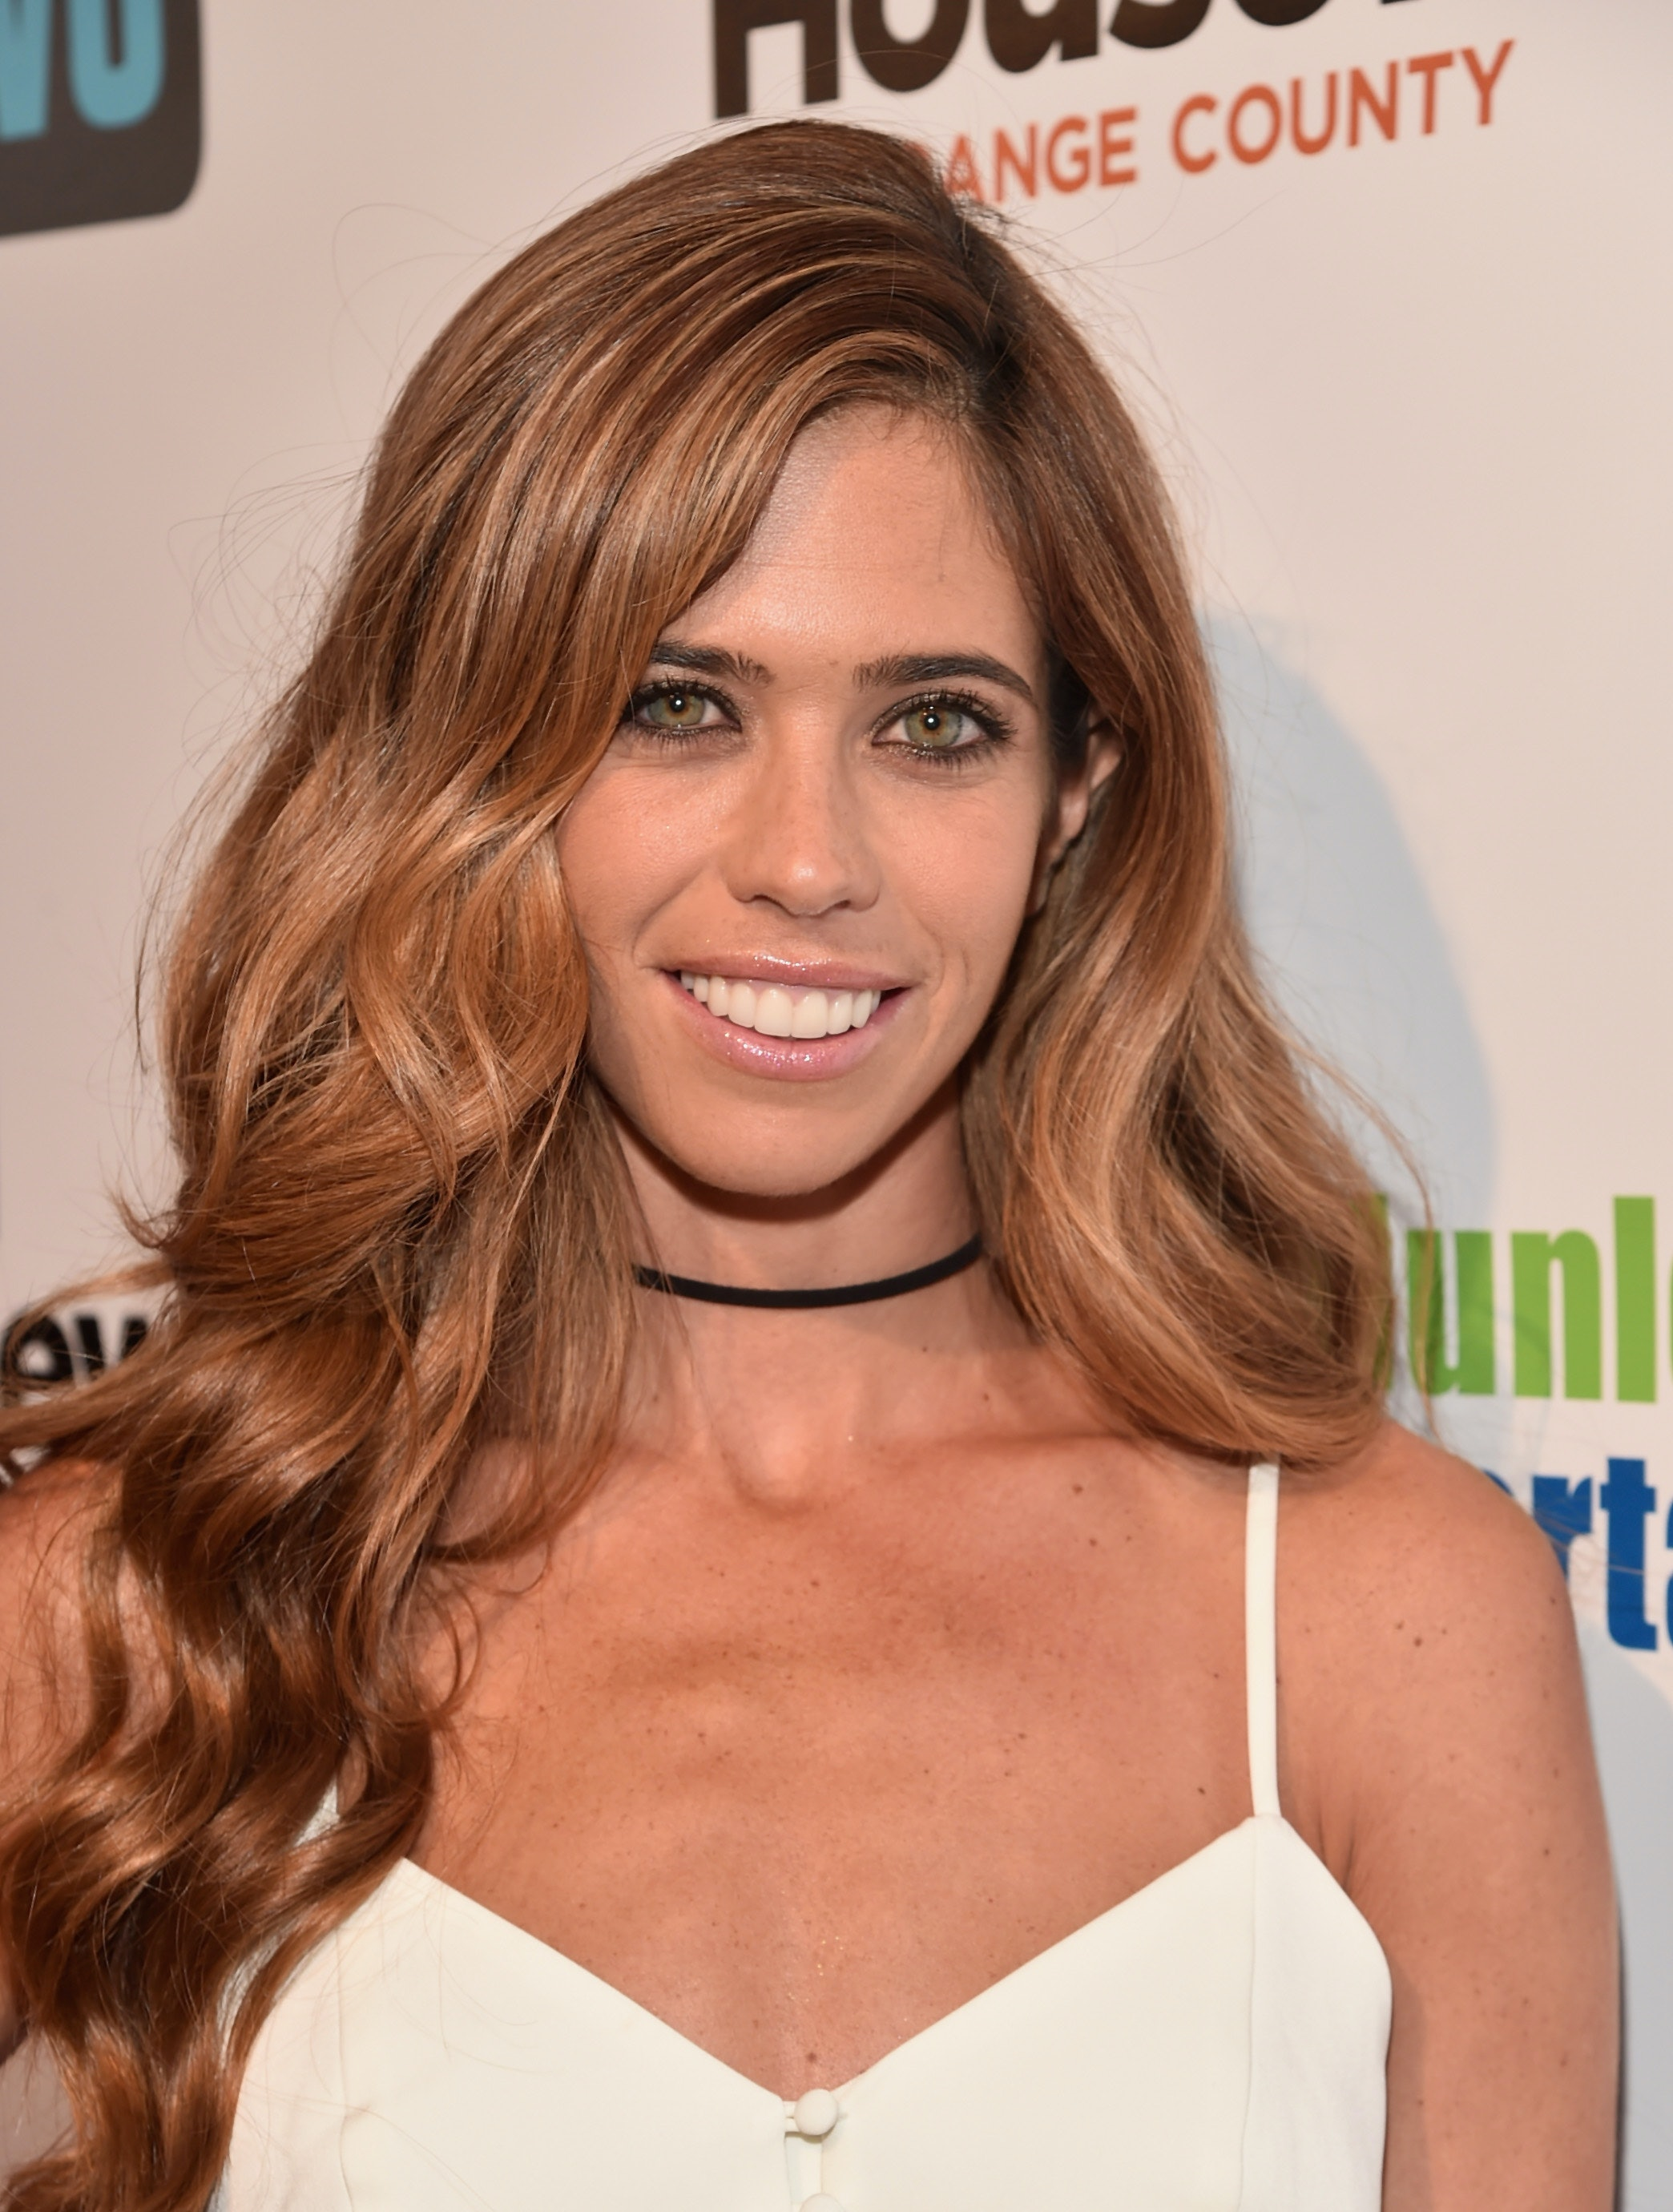 How Did Lydia McLaughlin Make Her Money? The 'RHOC' Star Is Living